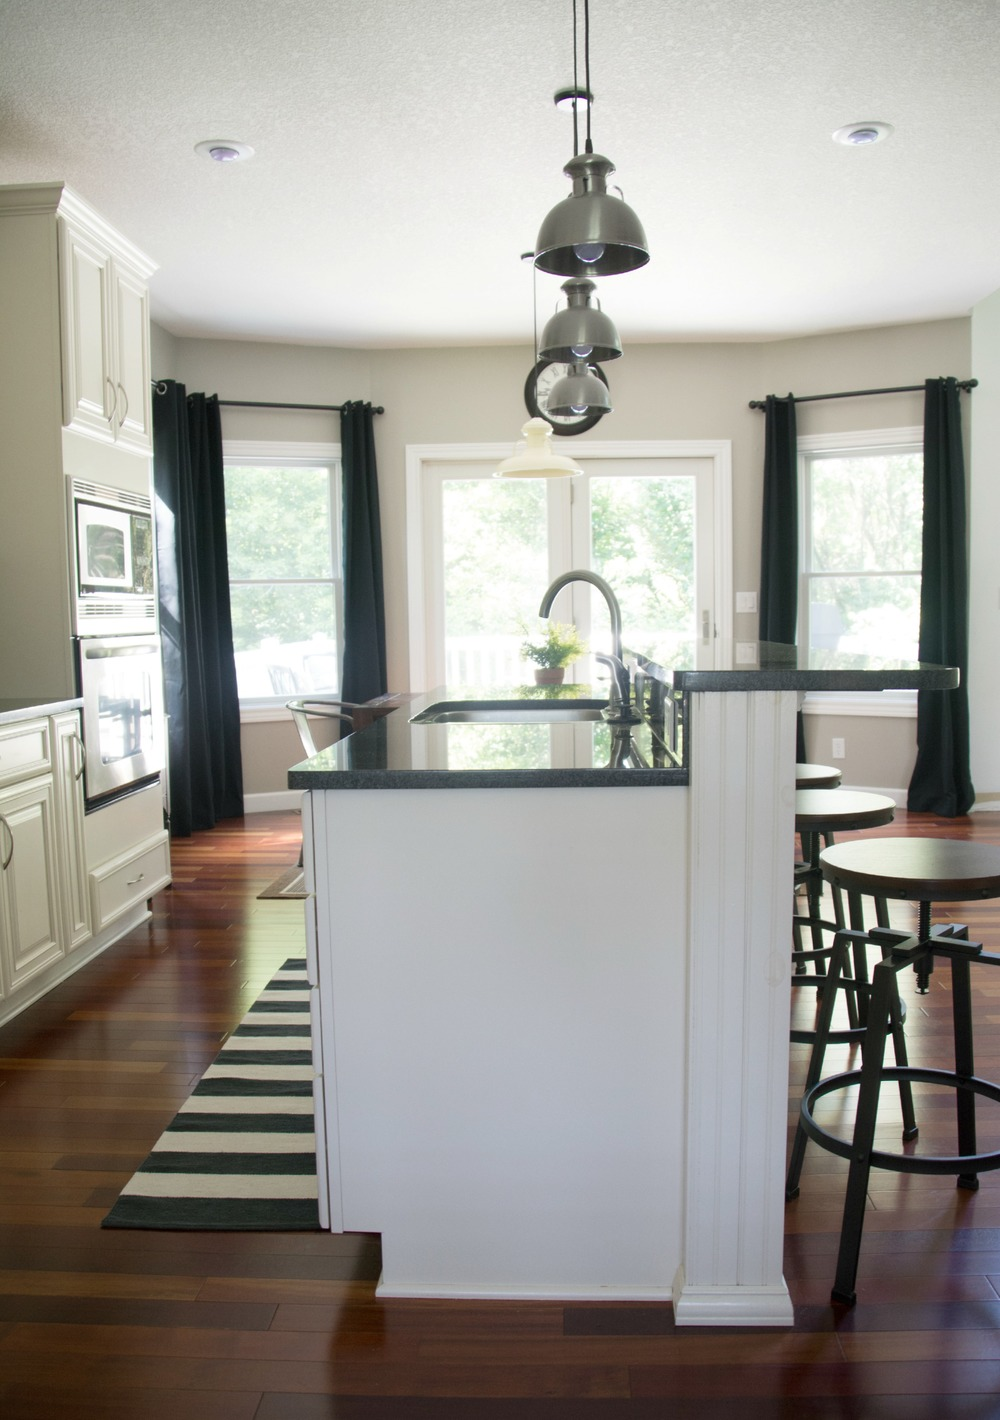 New Kitchen Curtains — Decor and the Dog